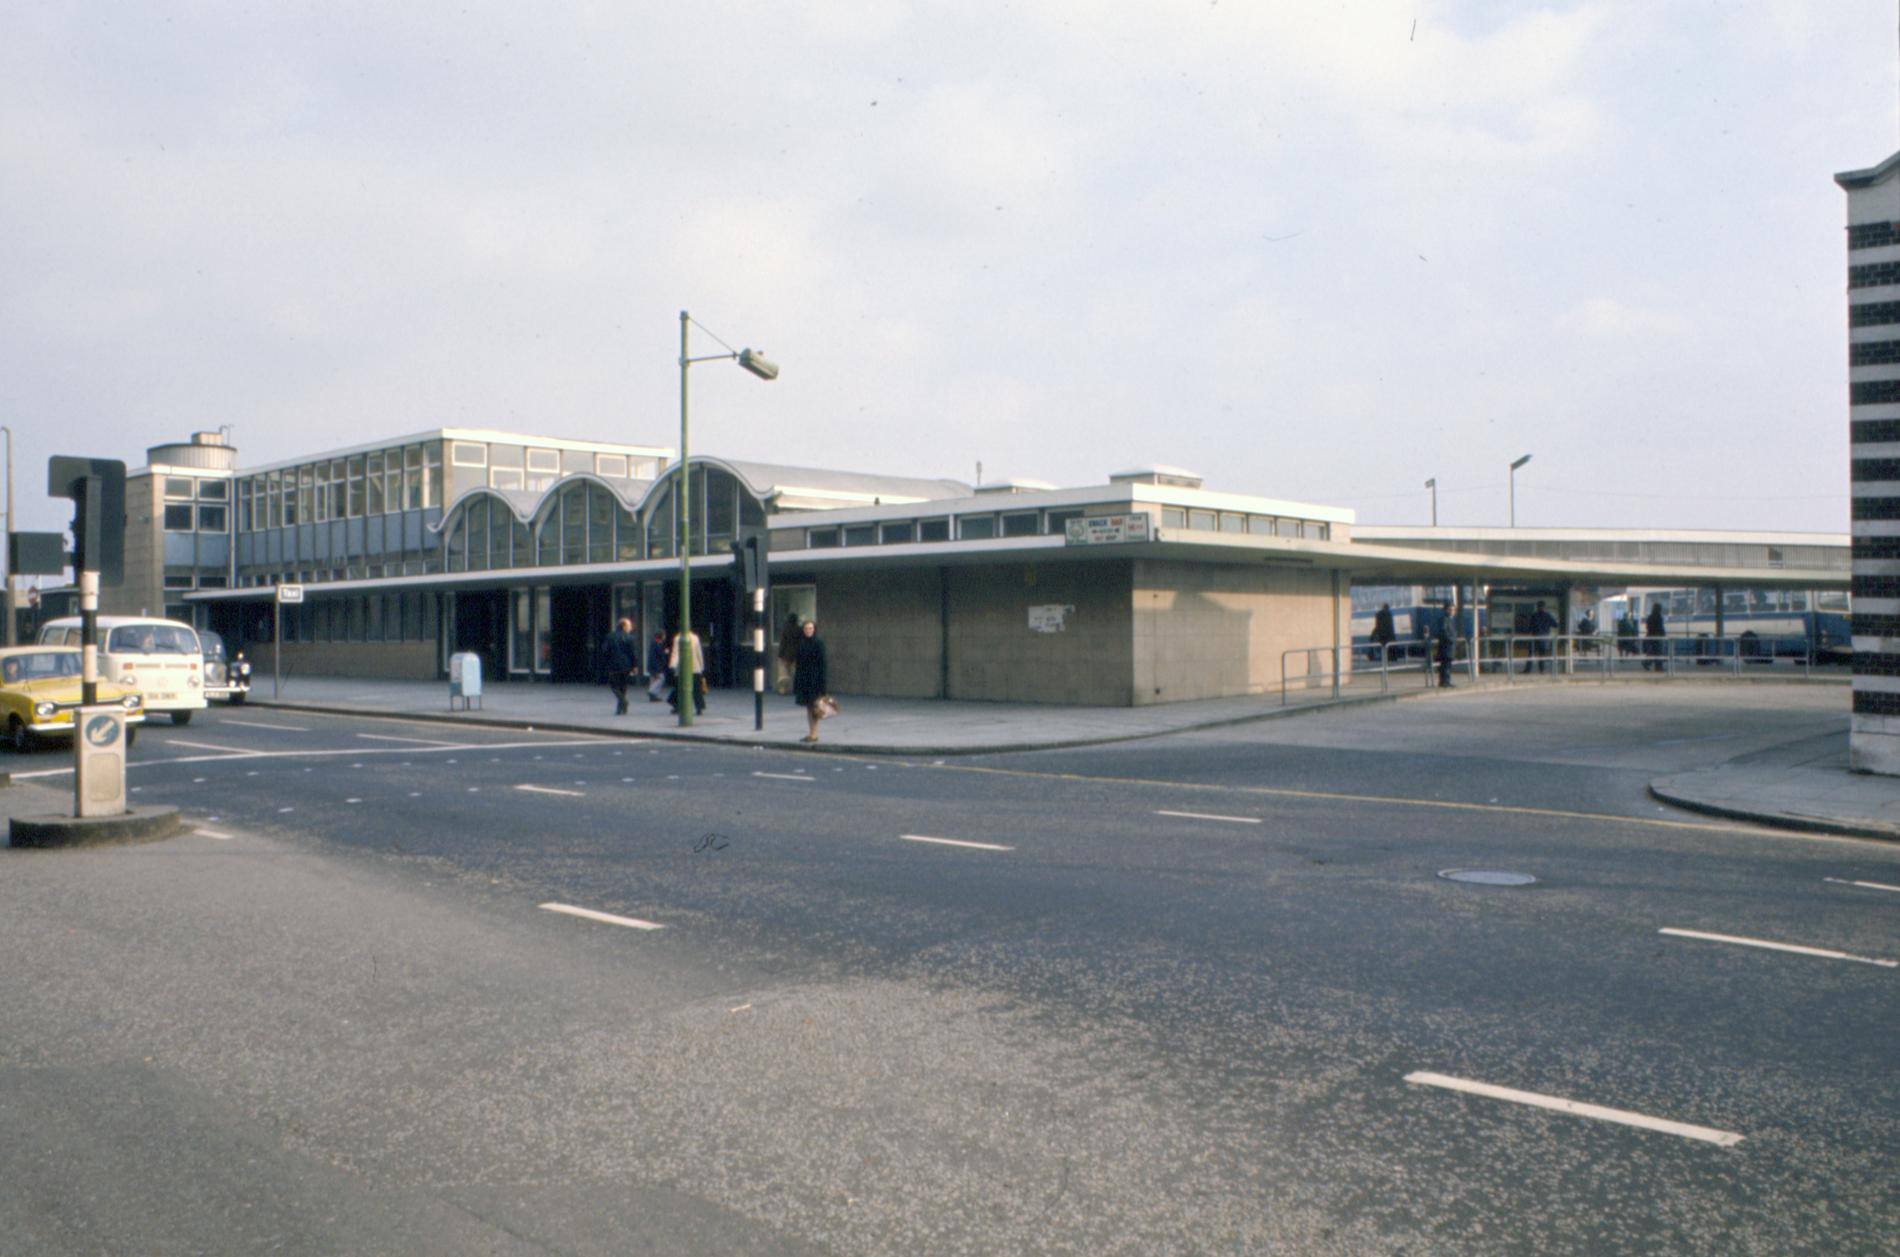 Industry Transport Oxford Street Bus Station Belfast (Photograph: Colour Transparency)